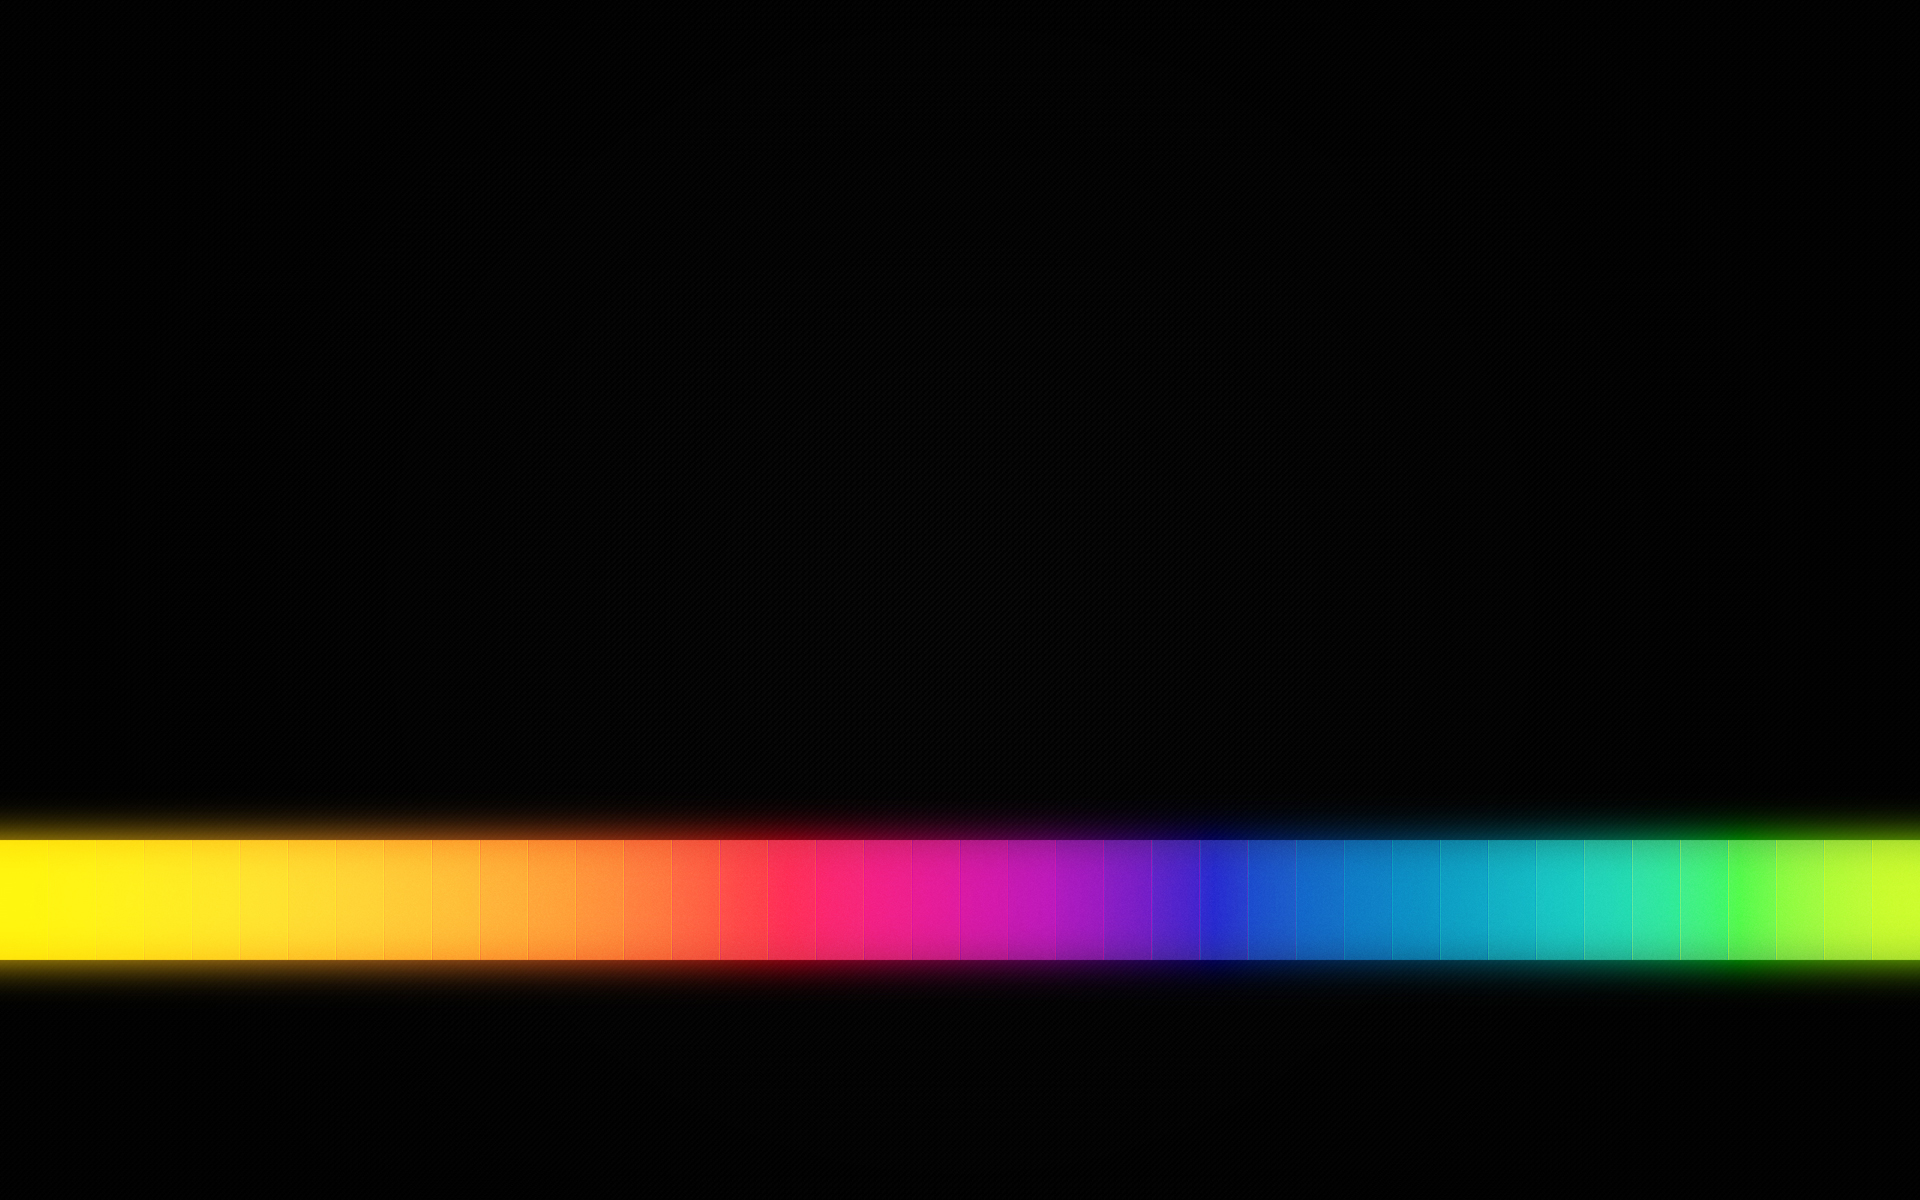 Free Spectrum Wallpaper